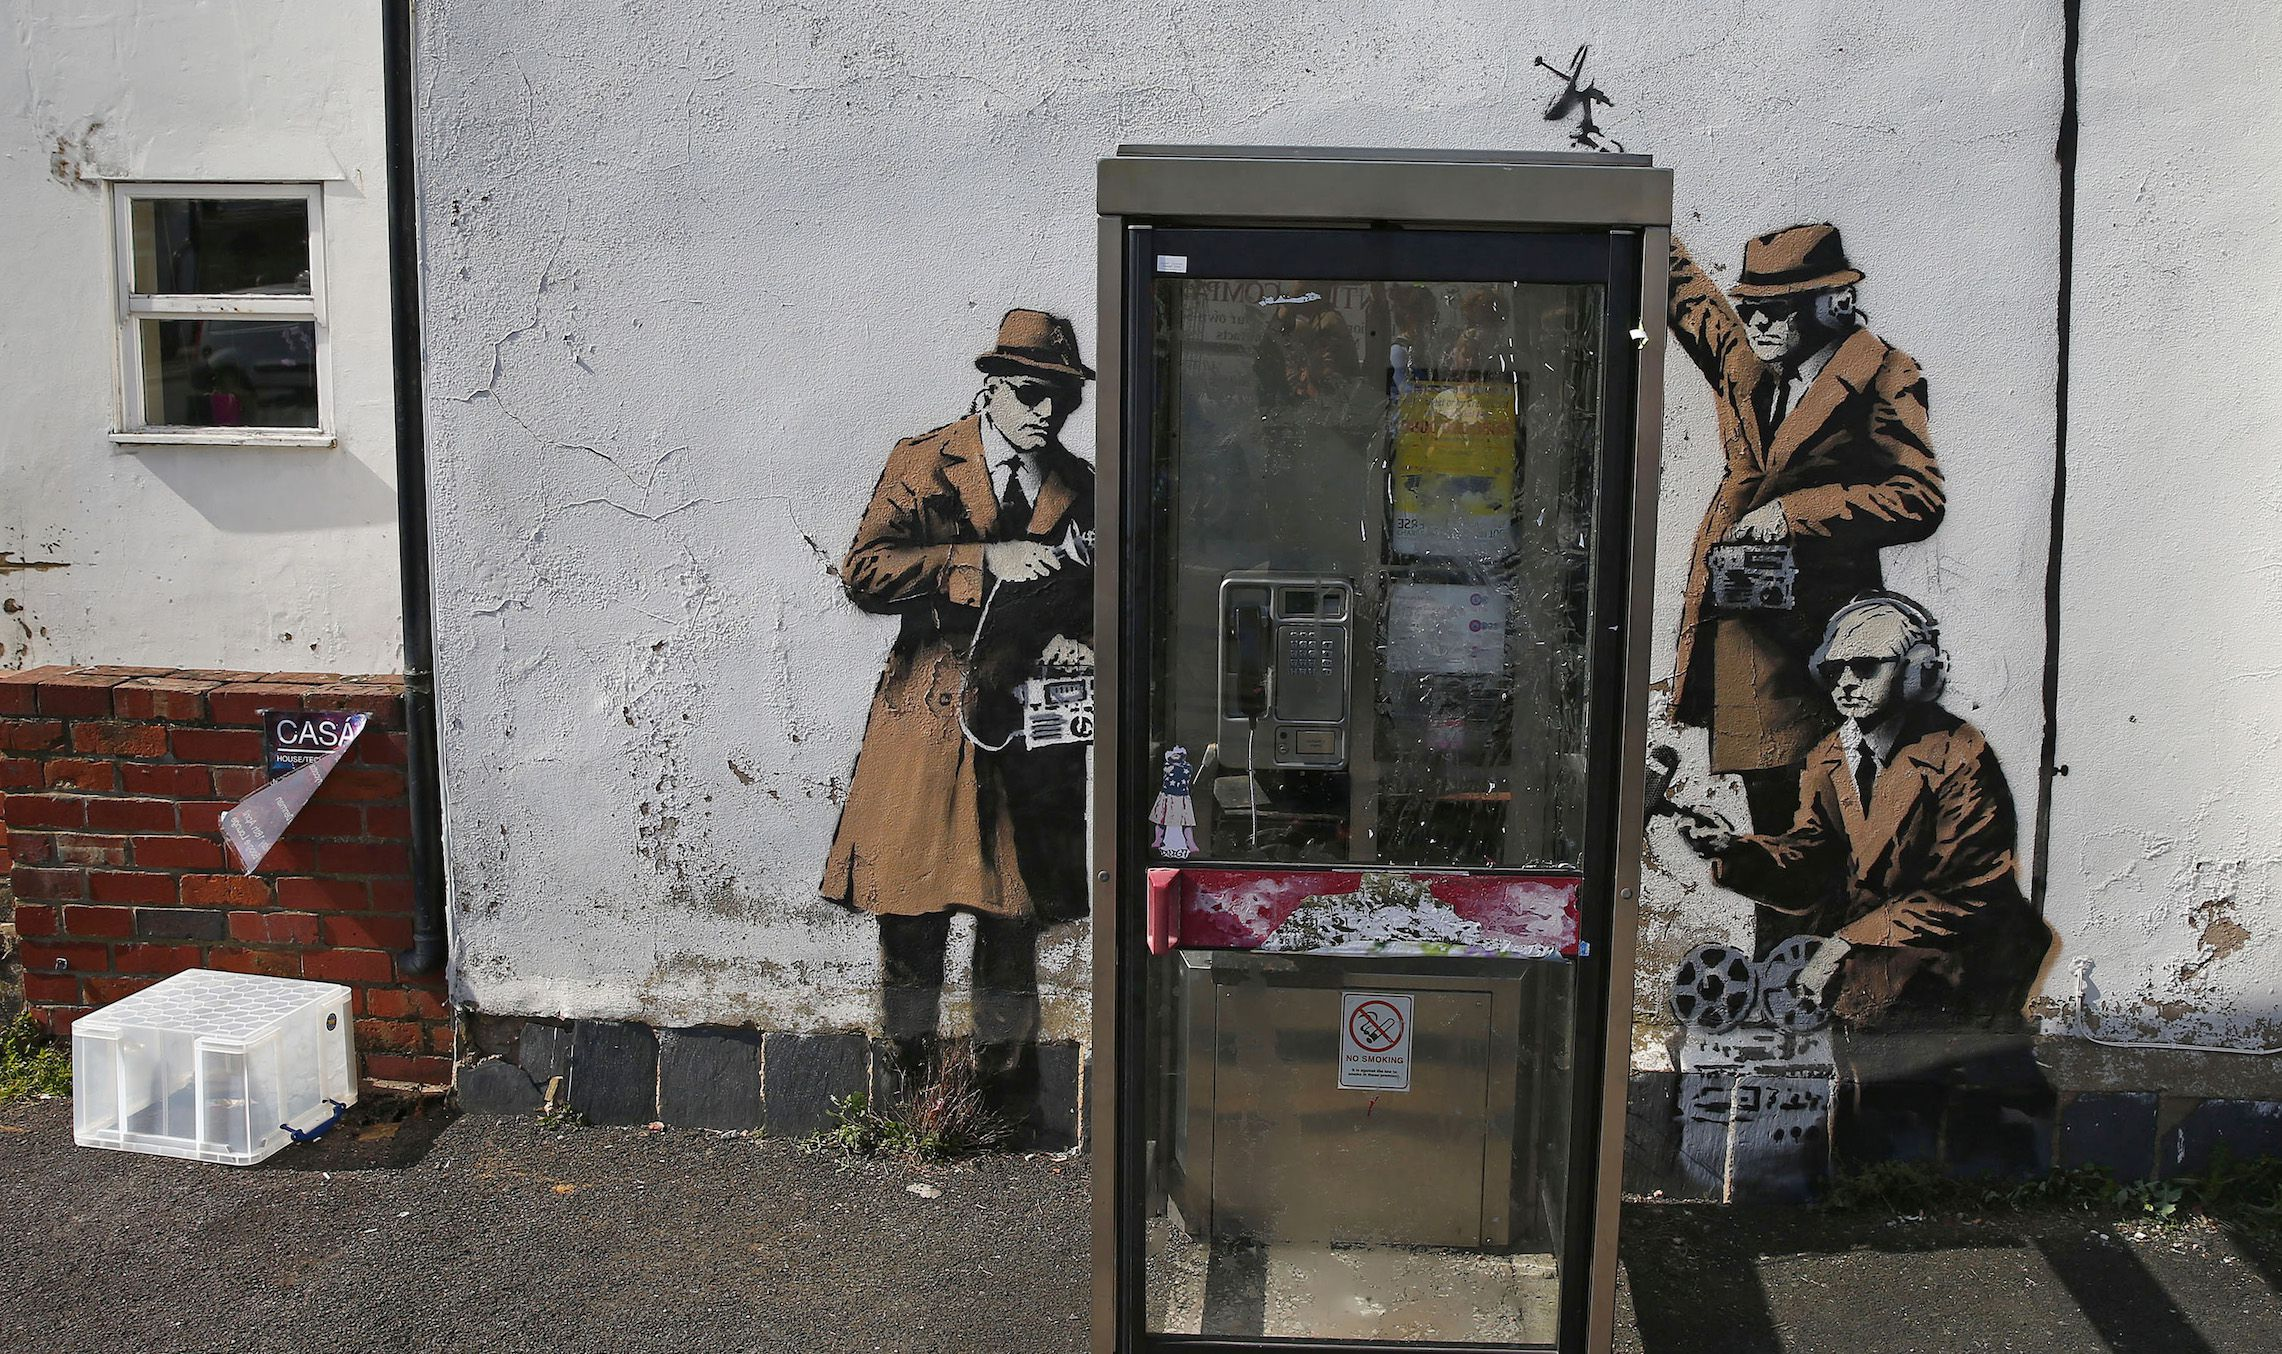 Graffiti art is seen on a wall near the headquarters of Britain's eavesdropping agency, Government Communications Headquarters, known as GCHQ, in Cheltenham, western England April 16, 2014. British media have attributed the new work to acclaimed British street artist Banksy, as a spoof on recent government spying scandals exposed by former U.S. National Security Agency contractor, Edward Snowden, who said that Britain's agency, GCHQ tapped fiber-optic cables carrying international phone and internet traffic and is sharing vast quantities of personal information with the NSA.  REUTERS/Eddie Keogh (BRITAIN - Tags: SOCIETY POLITICS) - RTR3LJIO